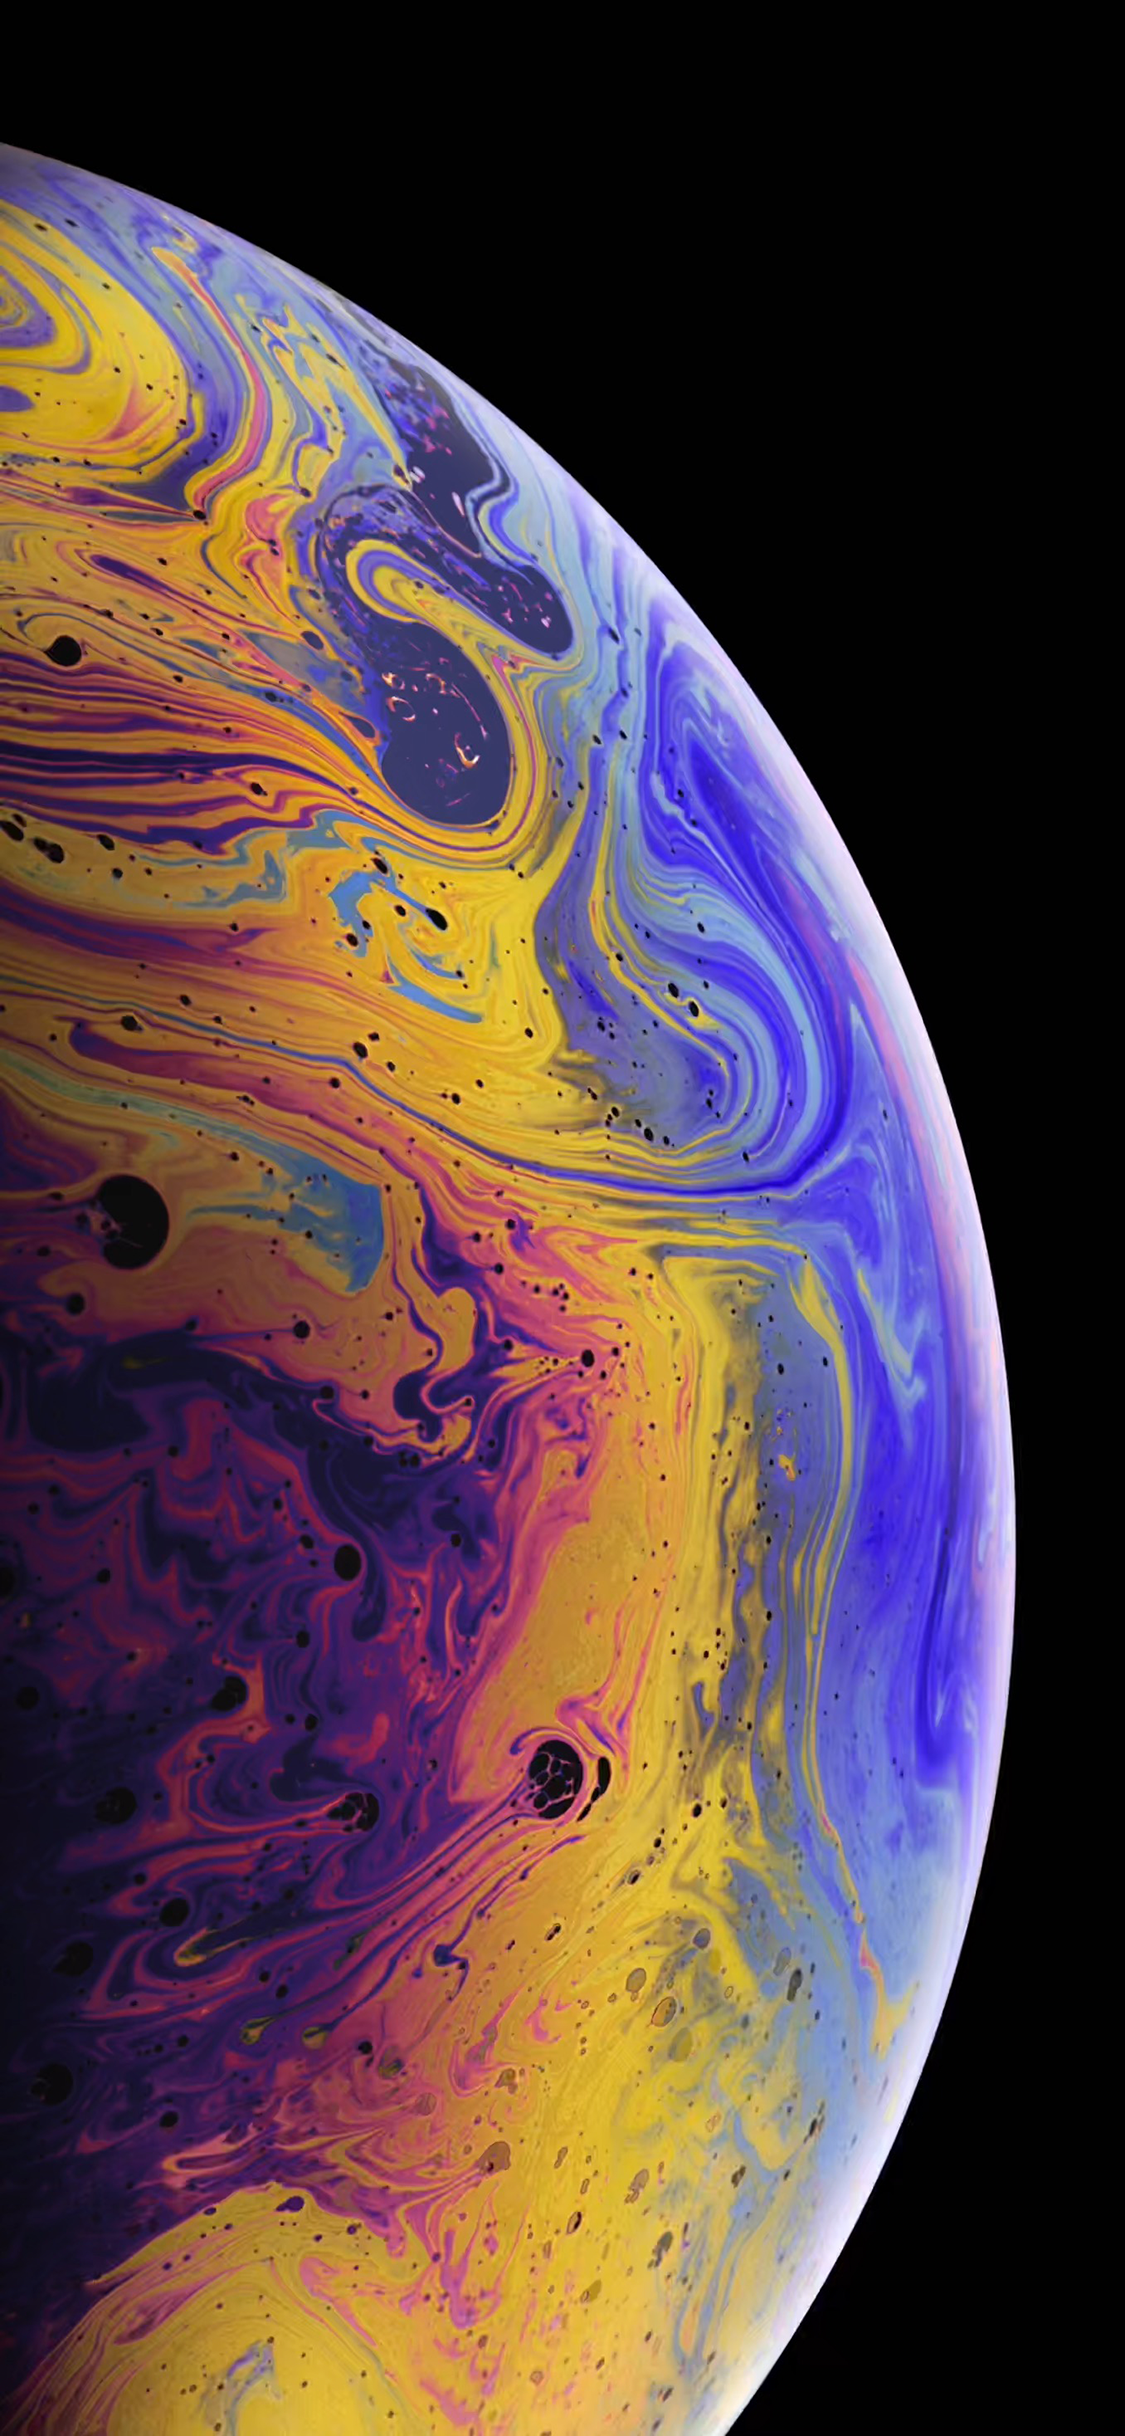 Ios 12 Wallpapers Wallpaper For Iphone X 8 7 6 Free